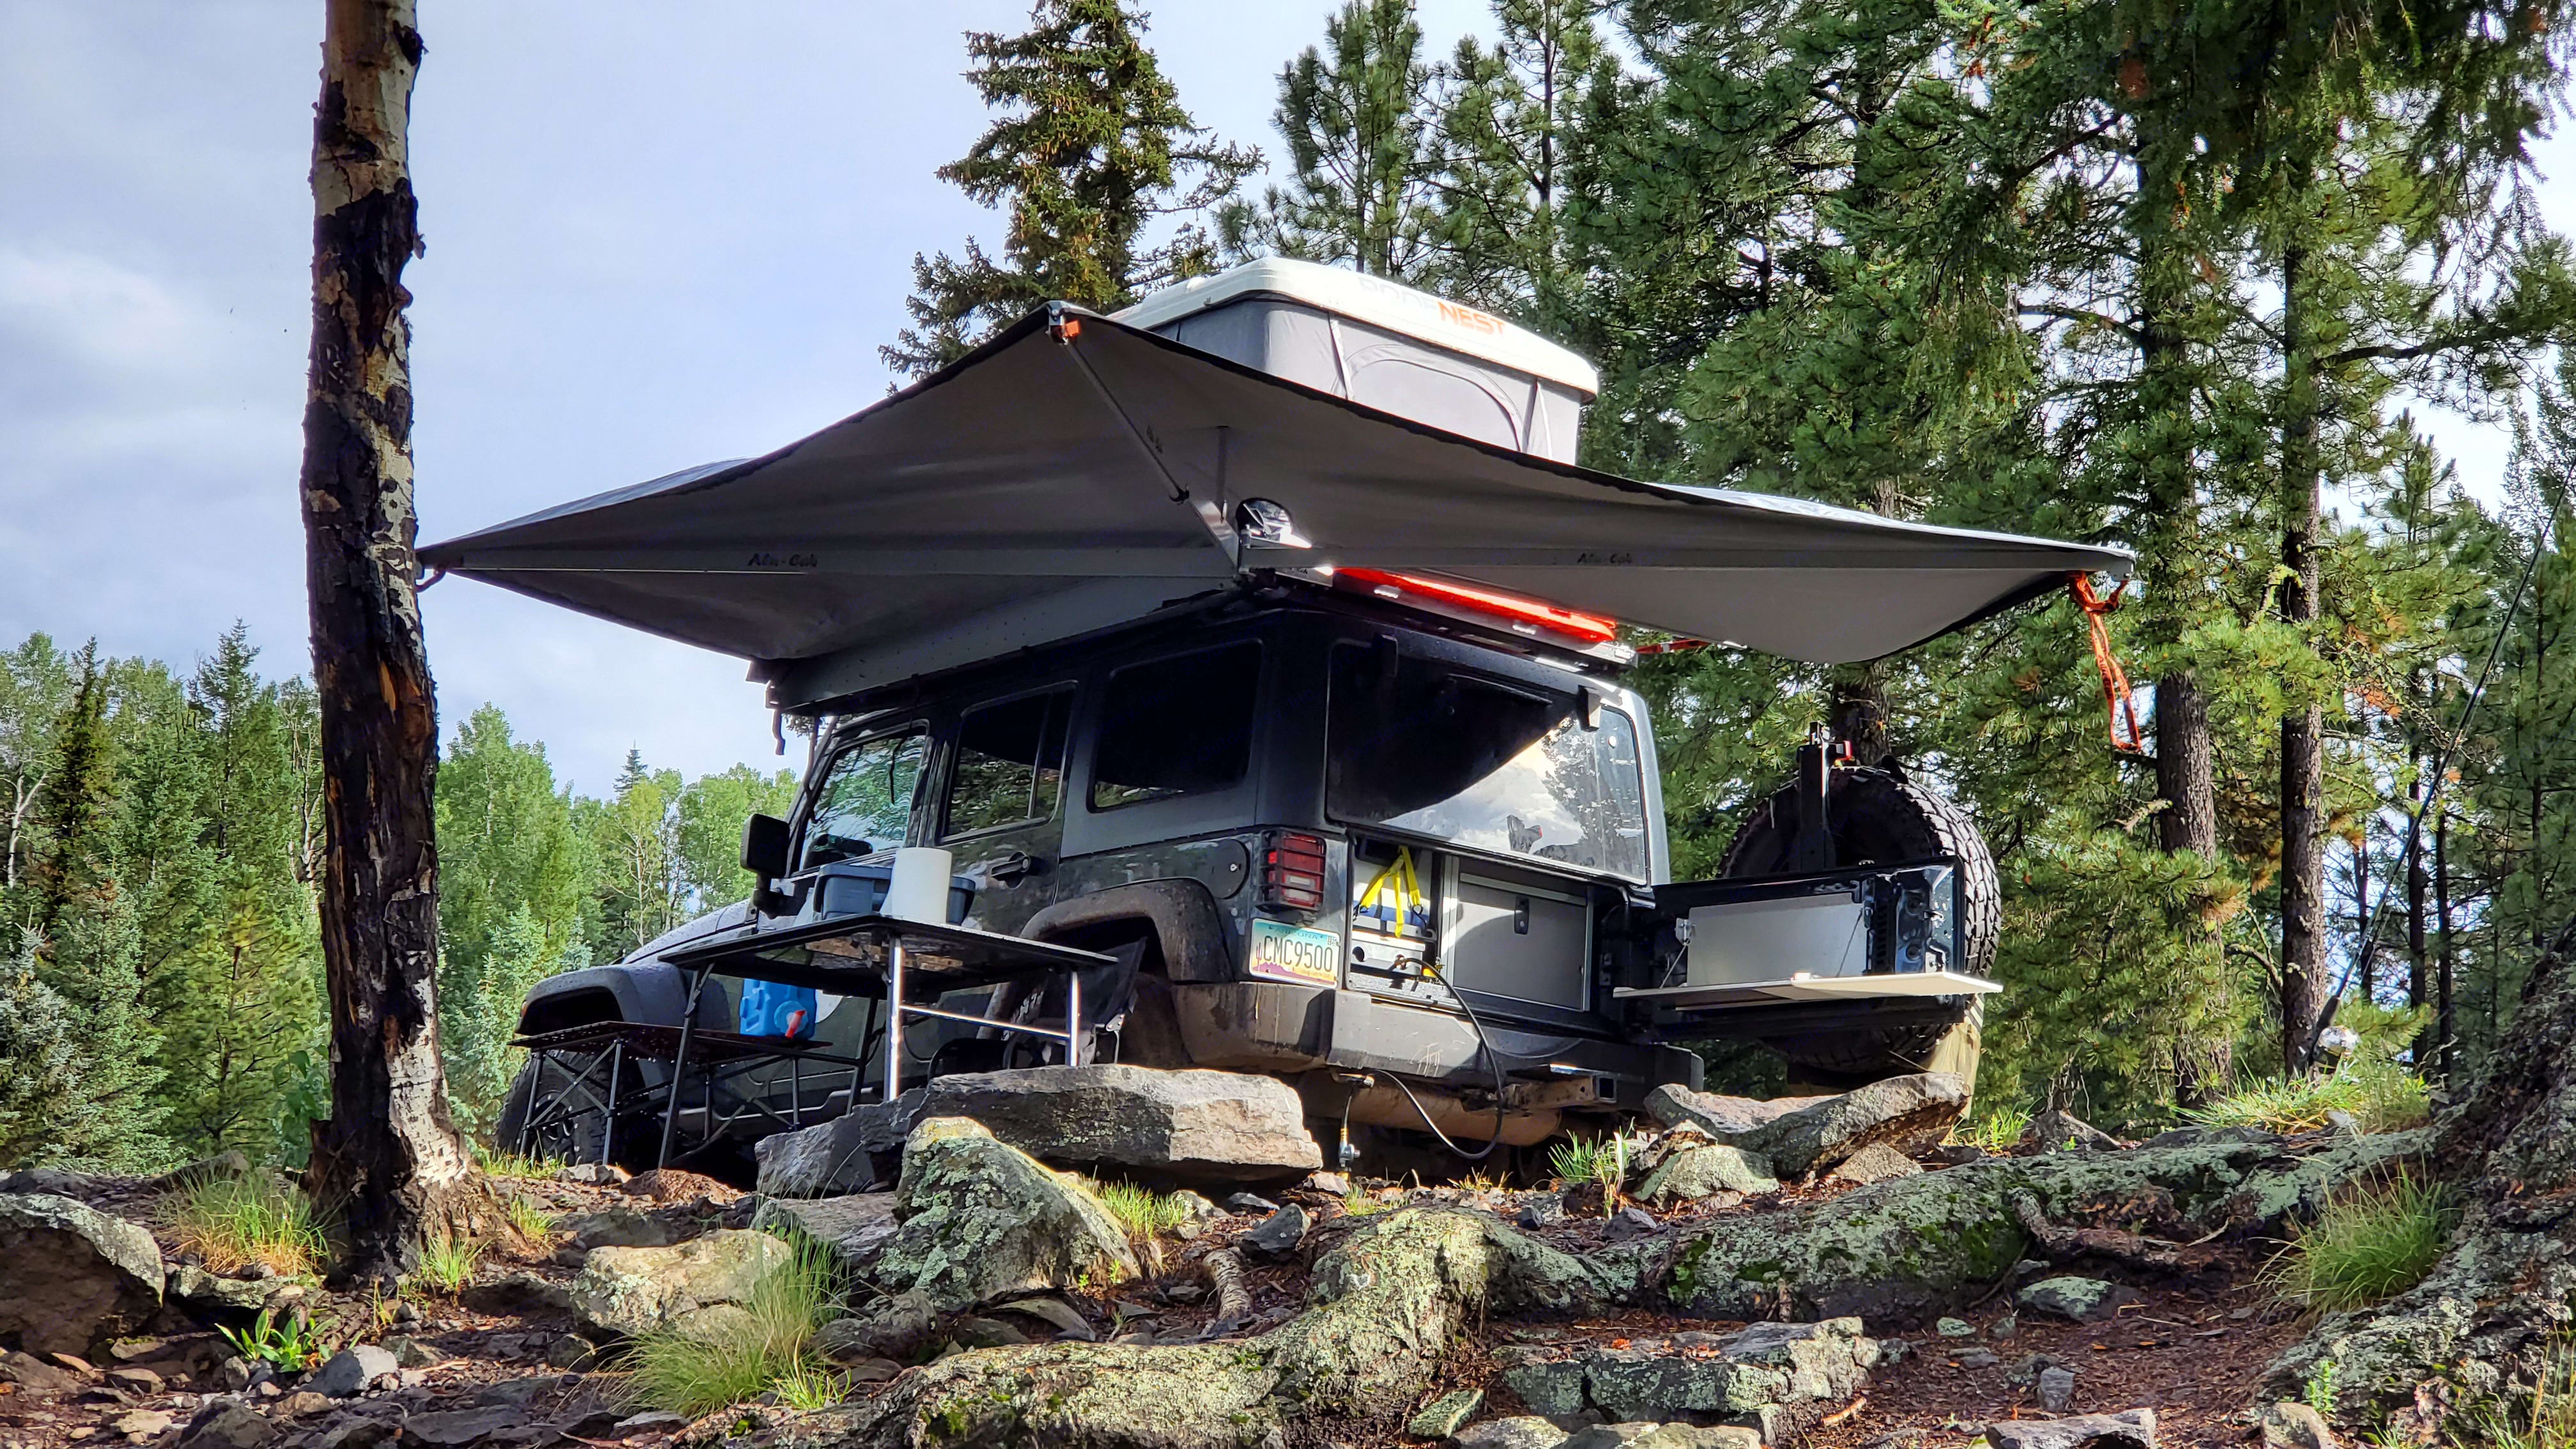 Large 270 degree awning can be expanded in 15 seconds and provides ample shelter from the sun and rain.. Jeep Wrangler Unlimited 2016